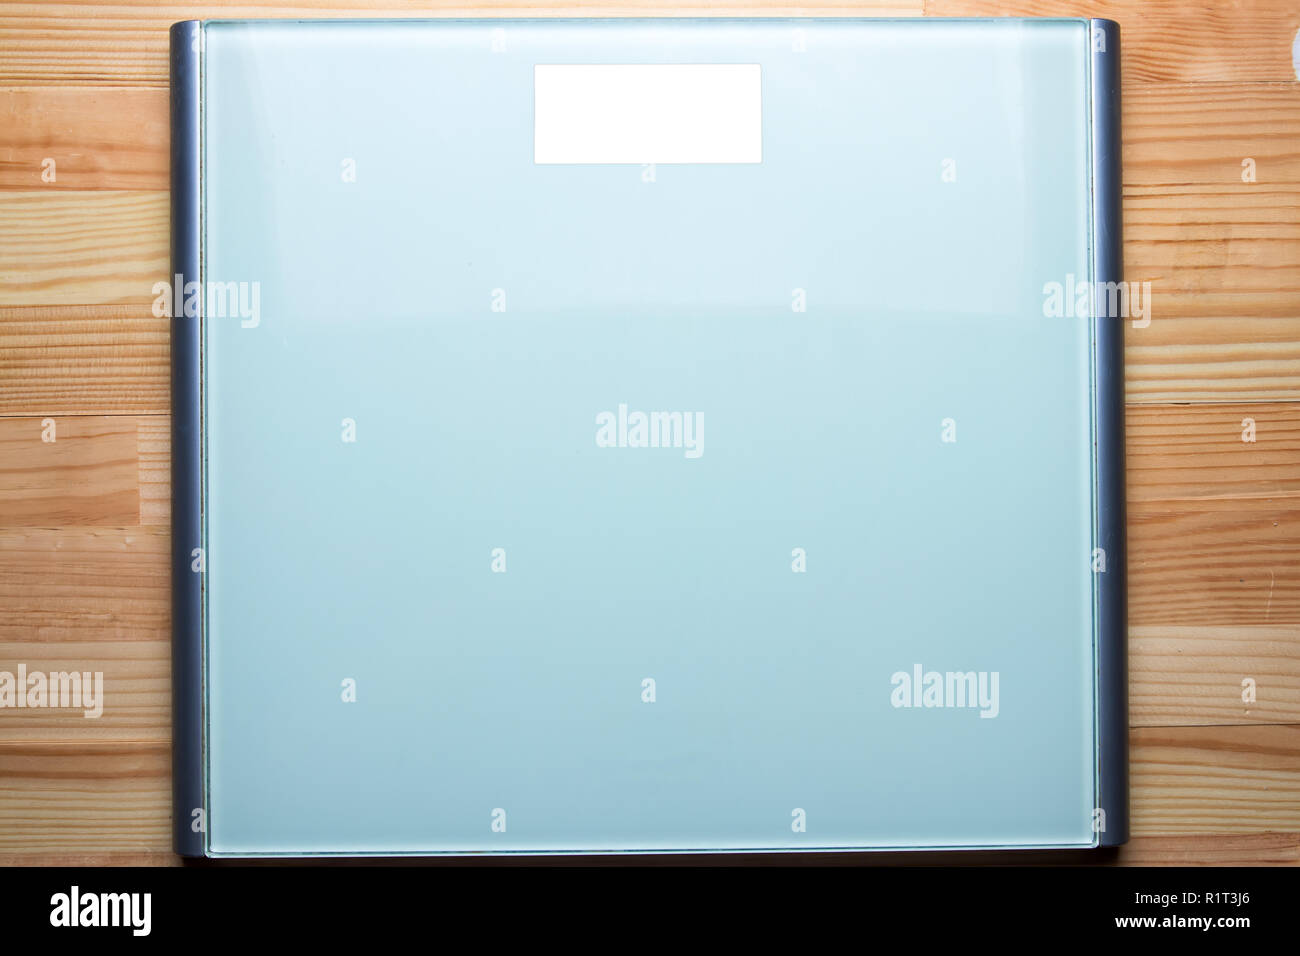 Bathroom weight scale on natural wooden table. Blank white screen display. Flat lay top view. - Stock Image